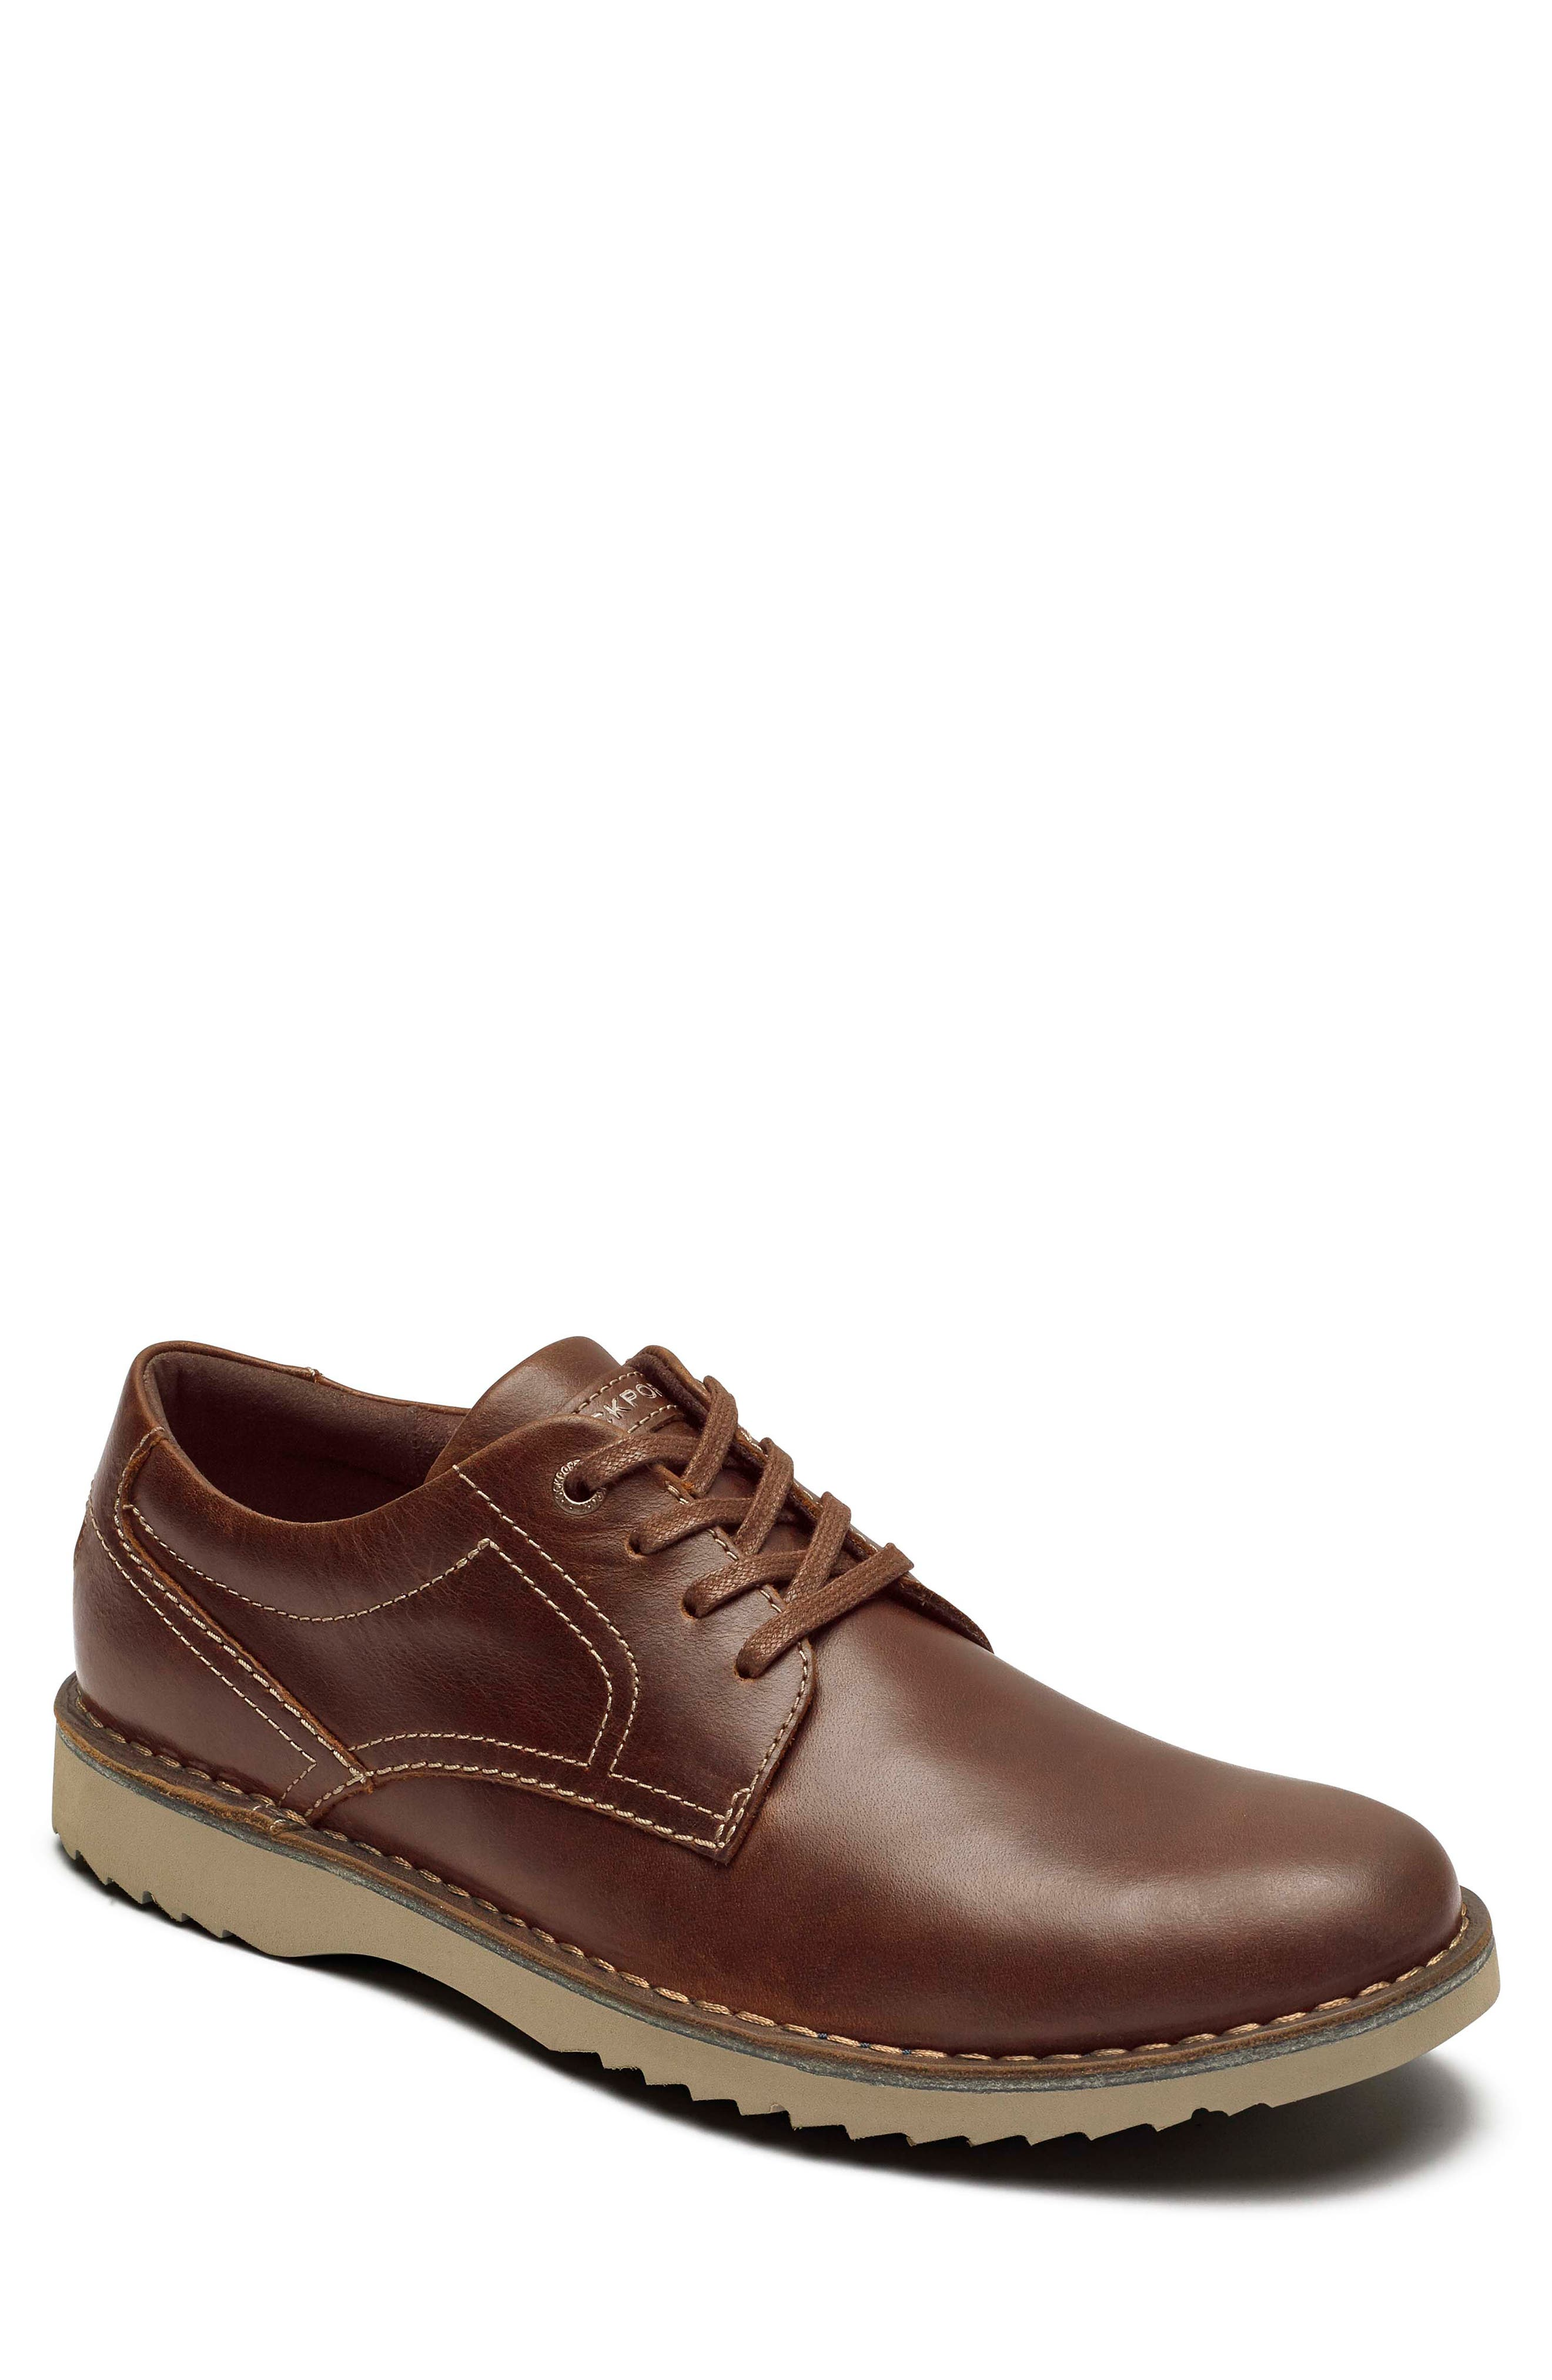 Cabot Plain Toe Derby,                         Main,                         color, TAN BROWN LEATHER